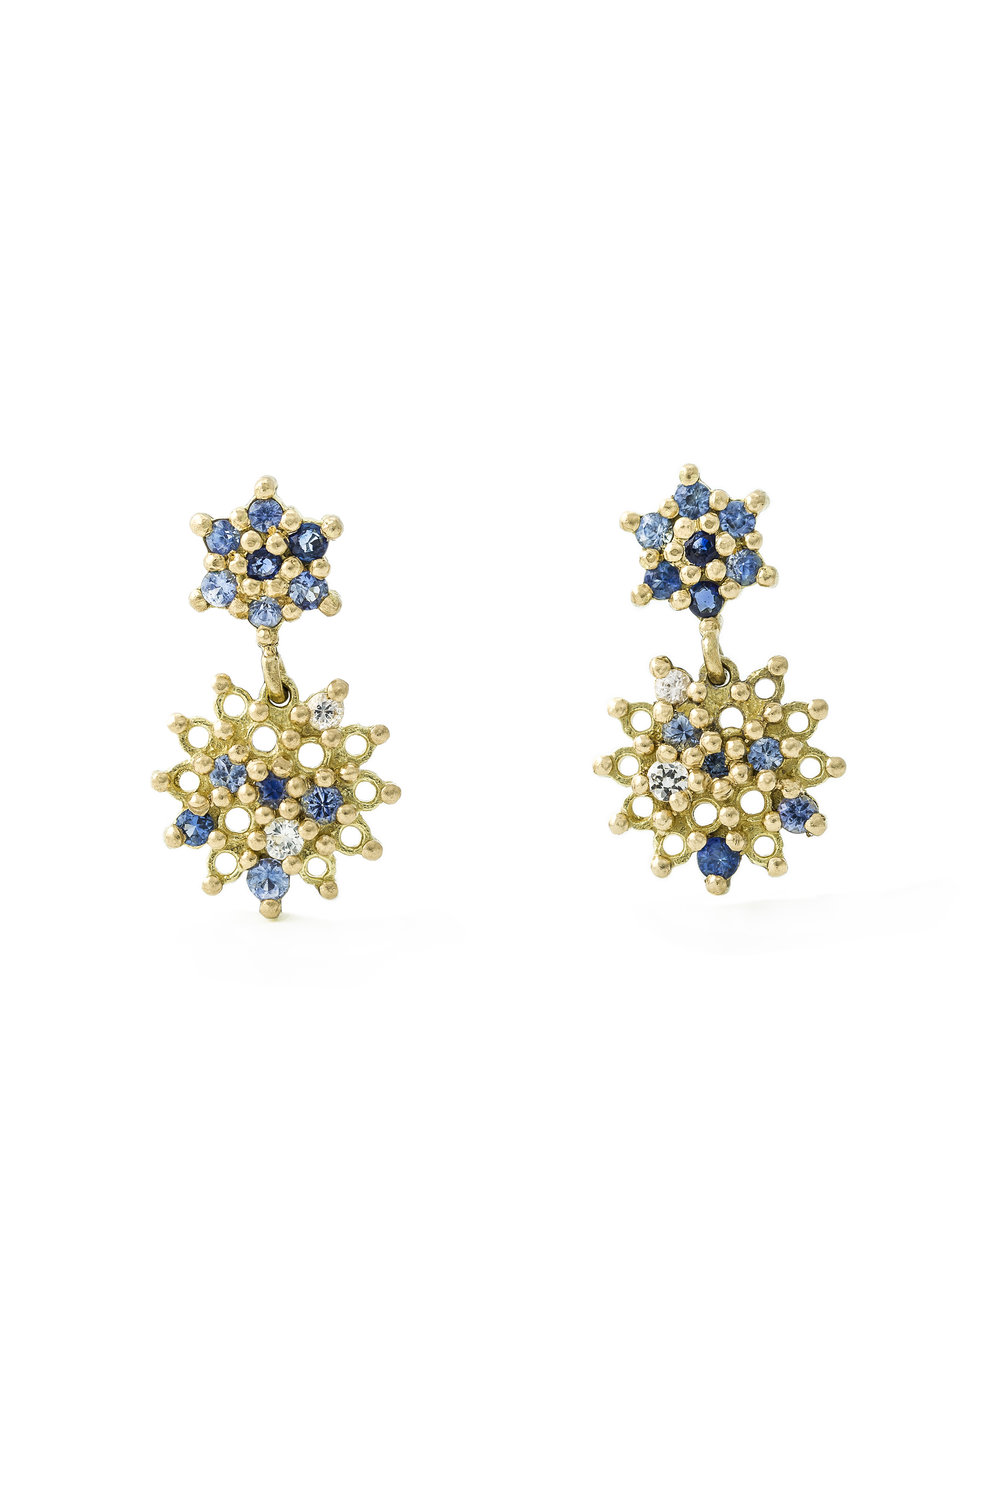 Multi coloured sapphire star drops in yellow gold